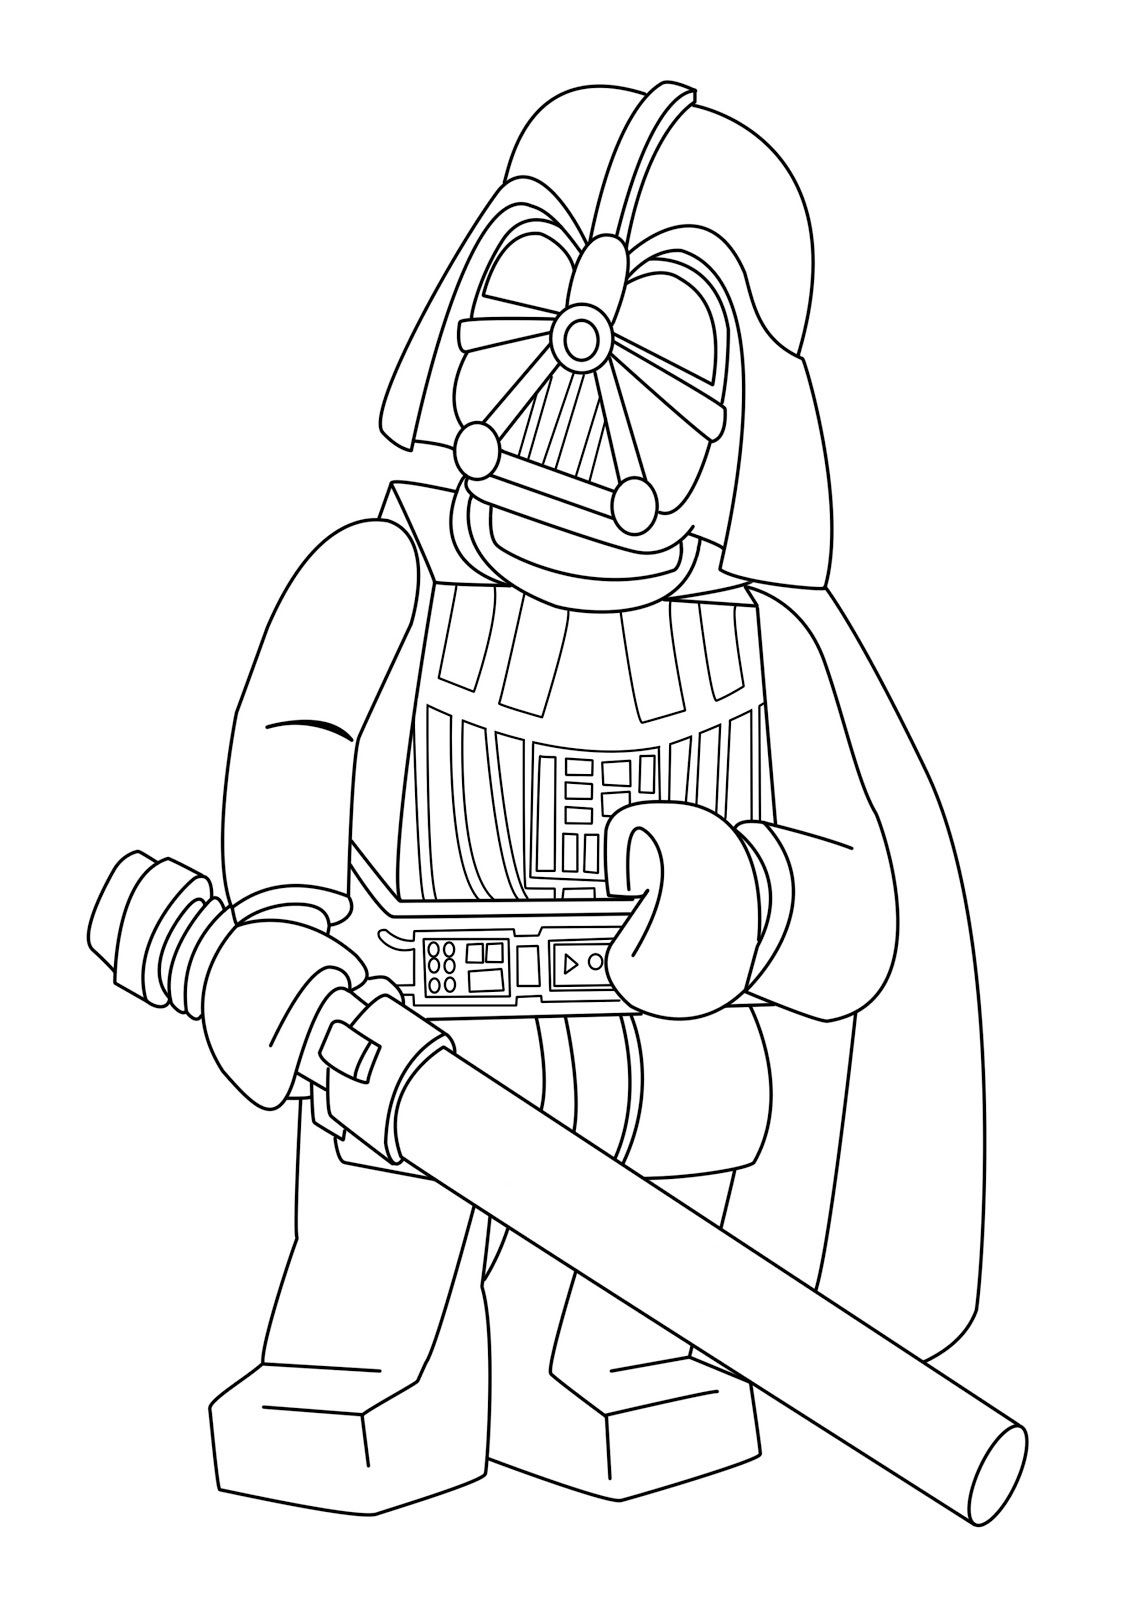 lego star wars coloring pages | www.walzem.net | templates ...